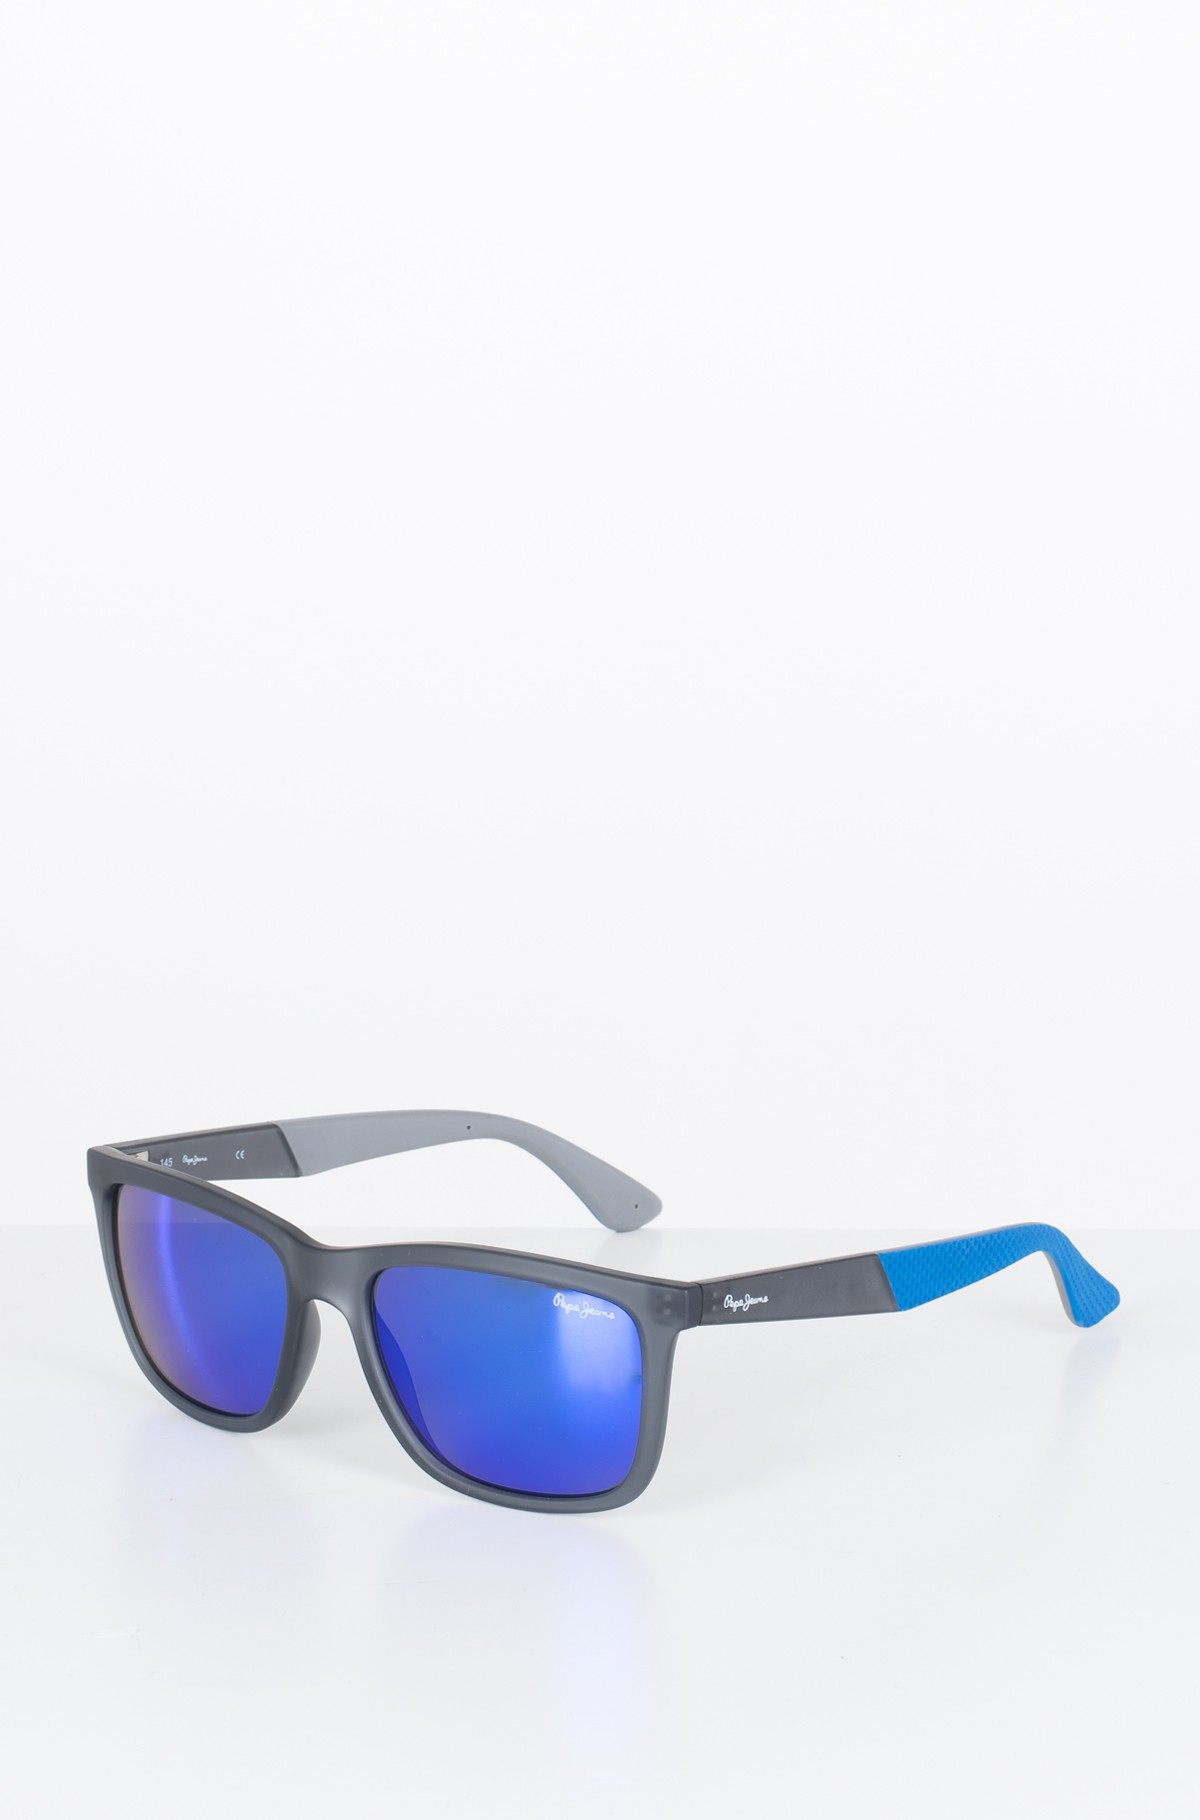 Sunglasses PJ7331-full-1